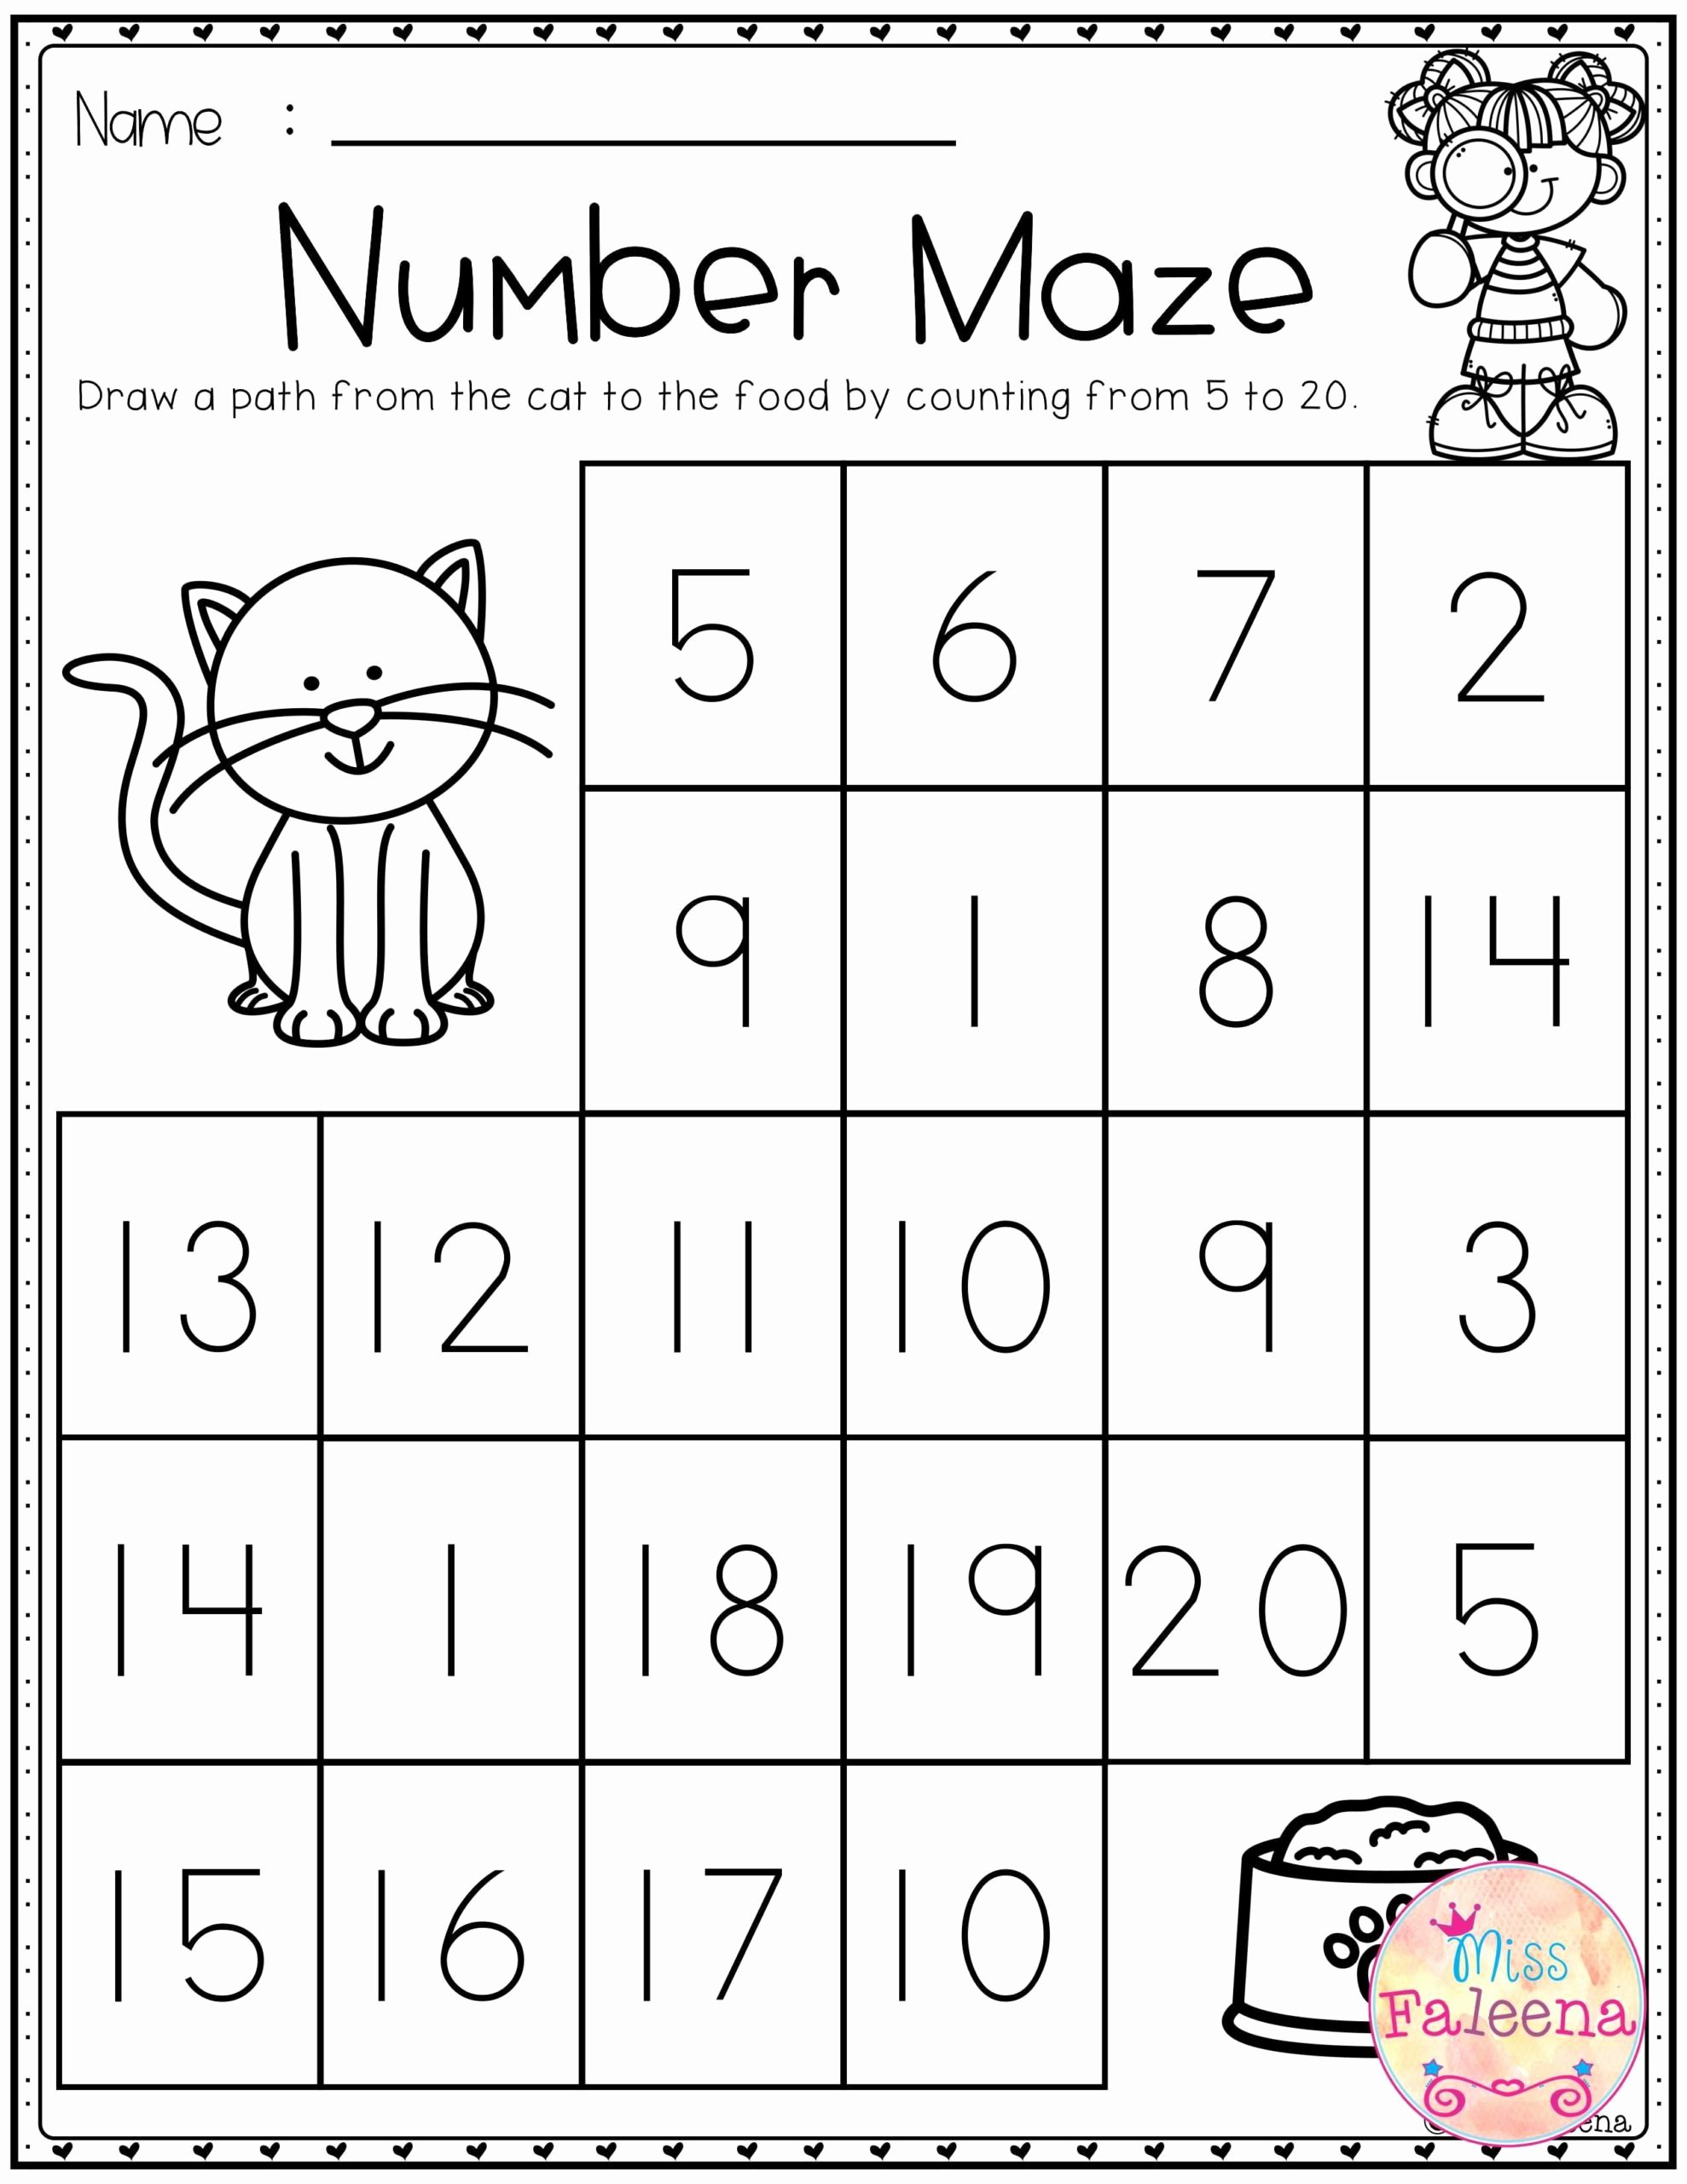 Math Worksheets for Preschoolers Printables Inspirational Math Worksheet Tremendous Math Worksheets Preschool Free